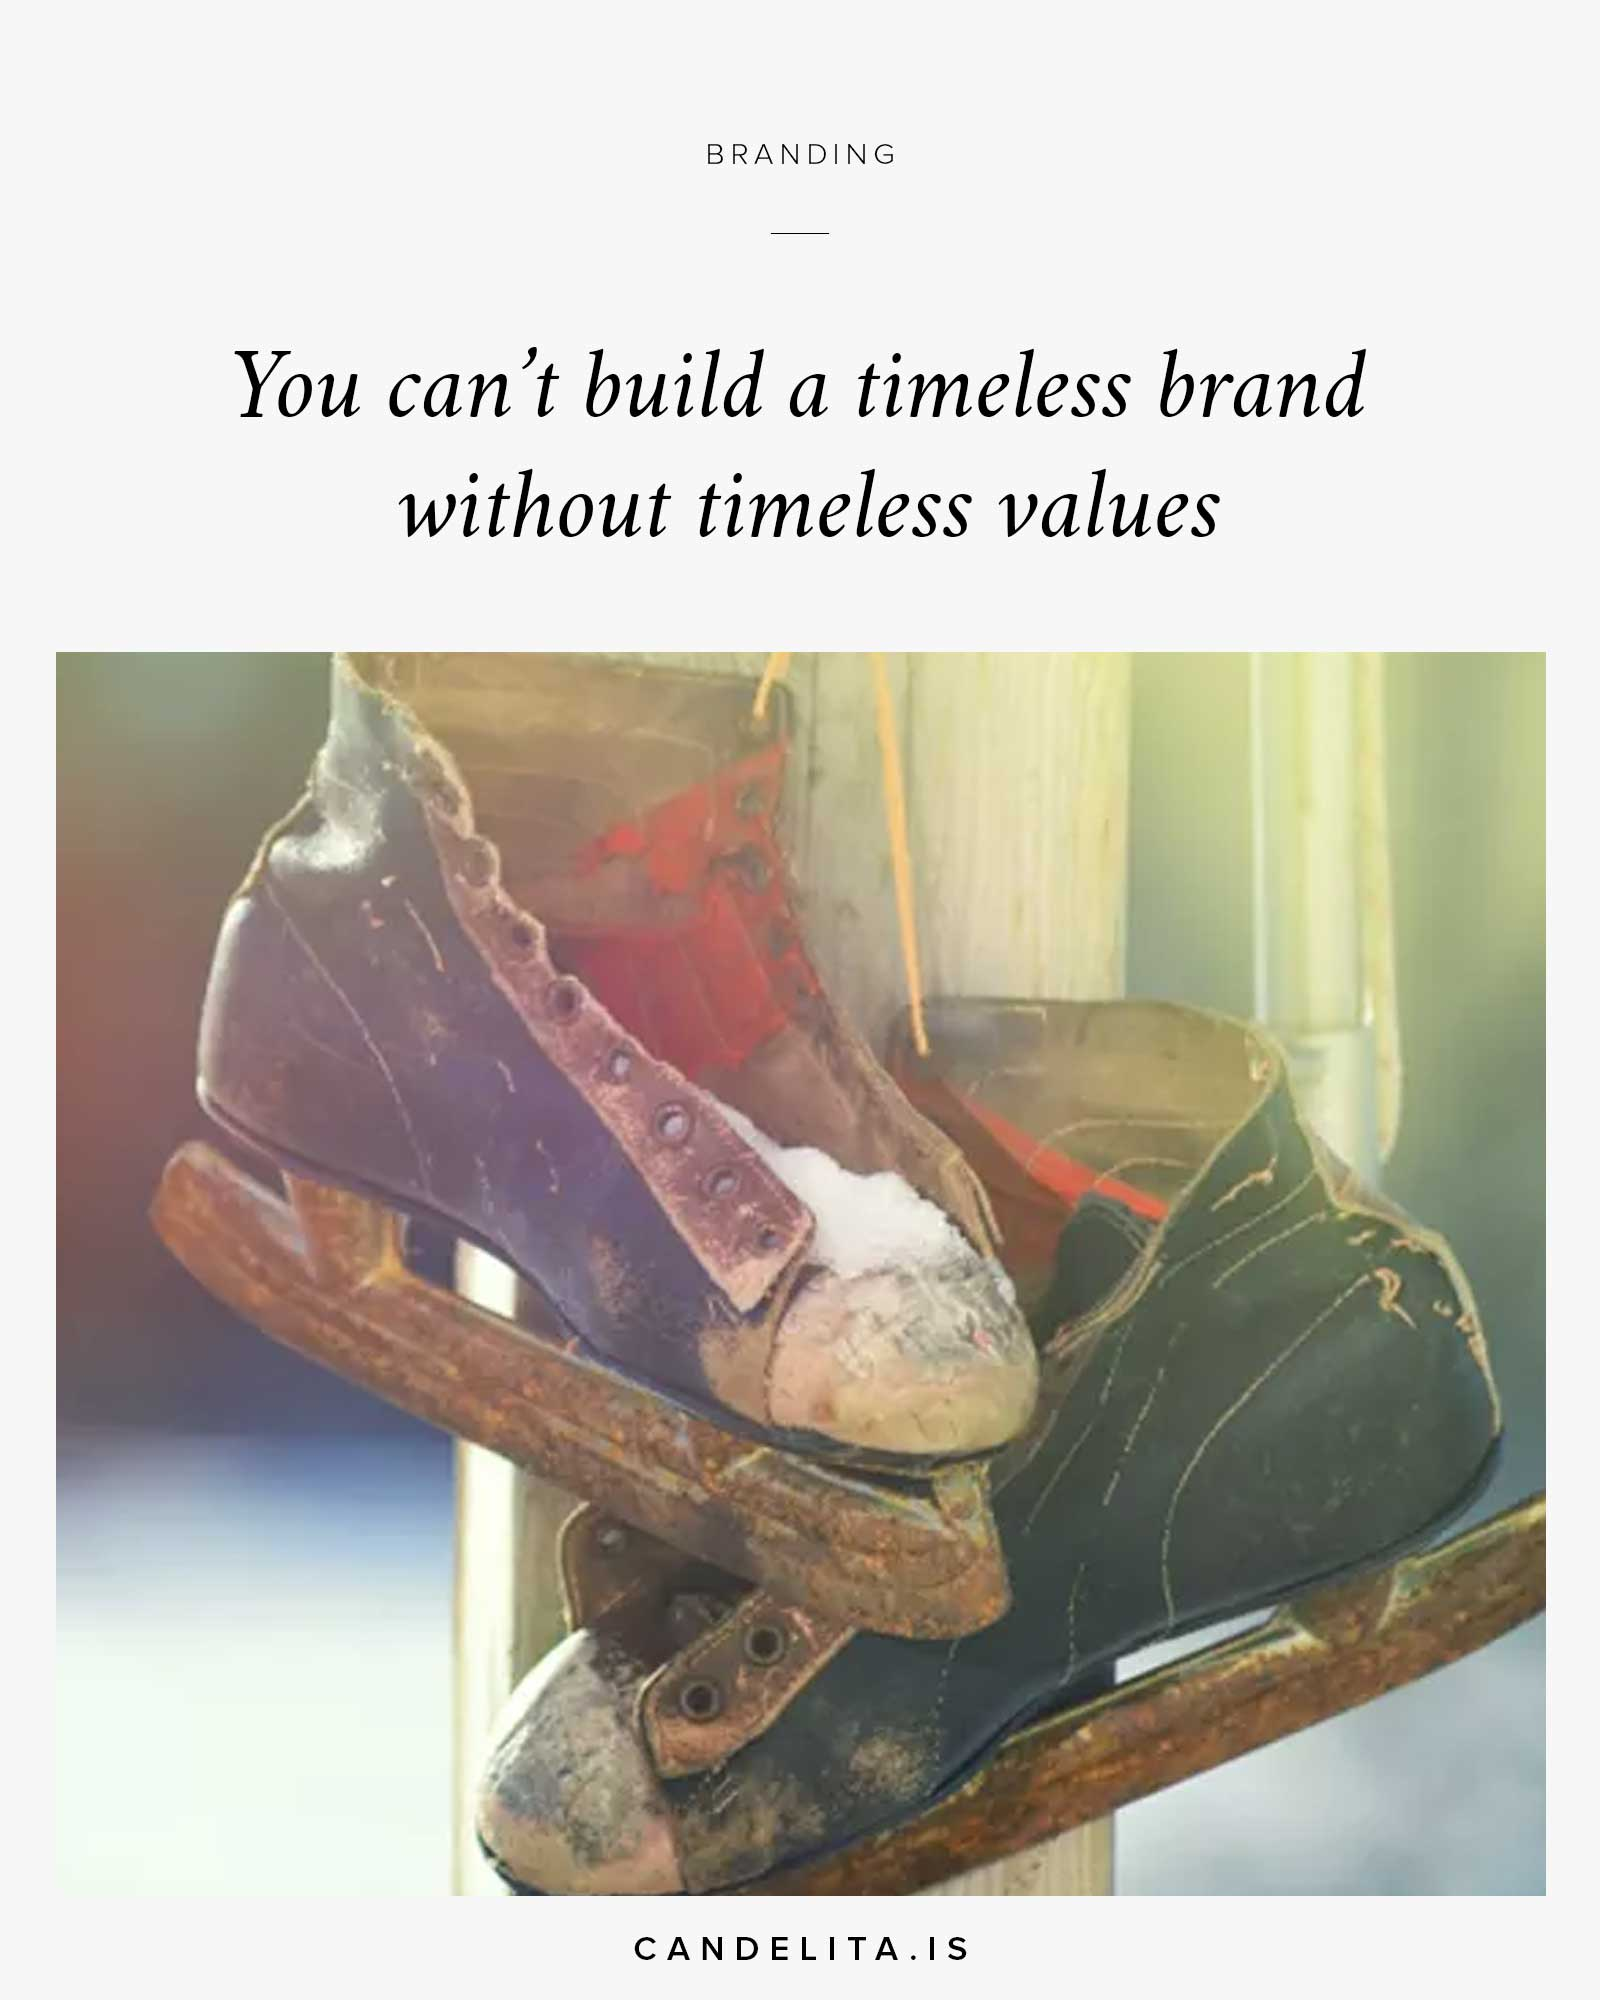 You can't build a timeless brand without timeless values